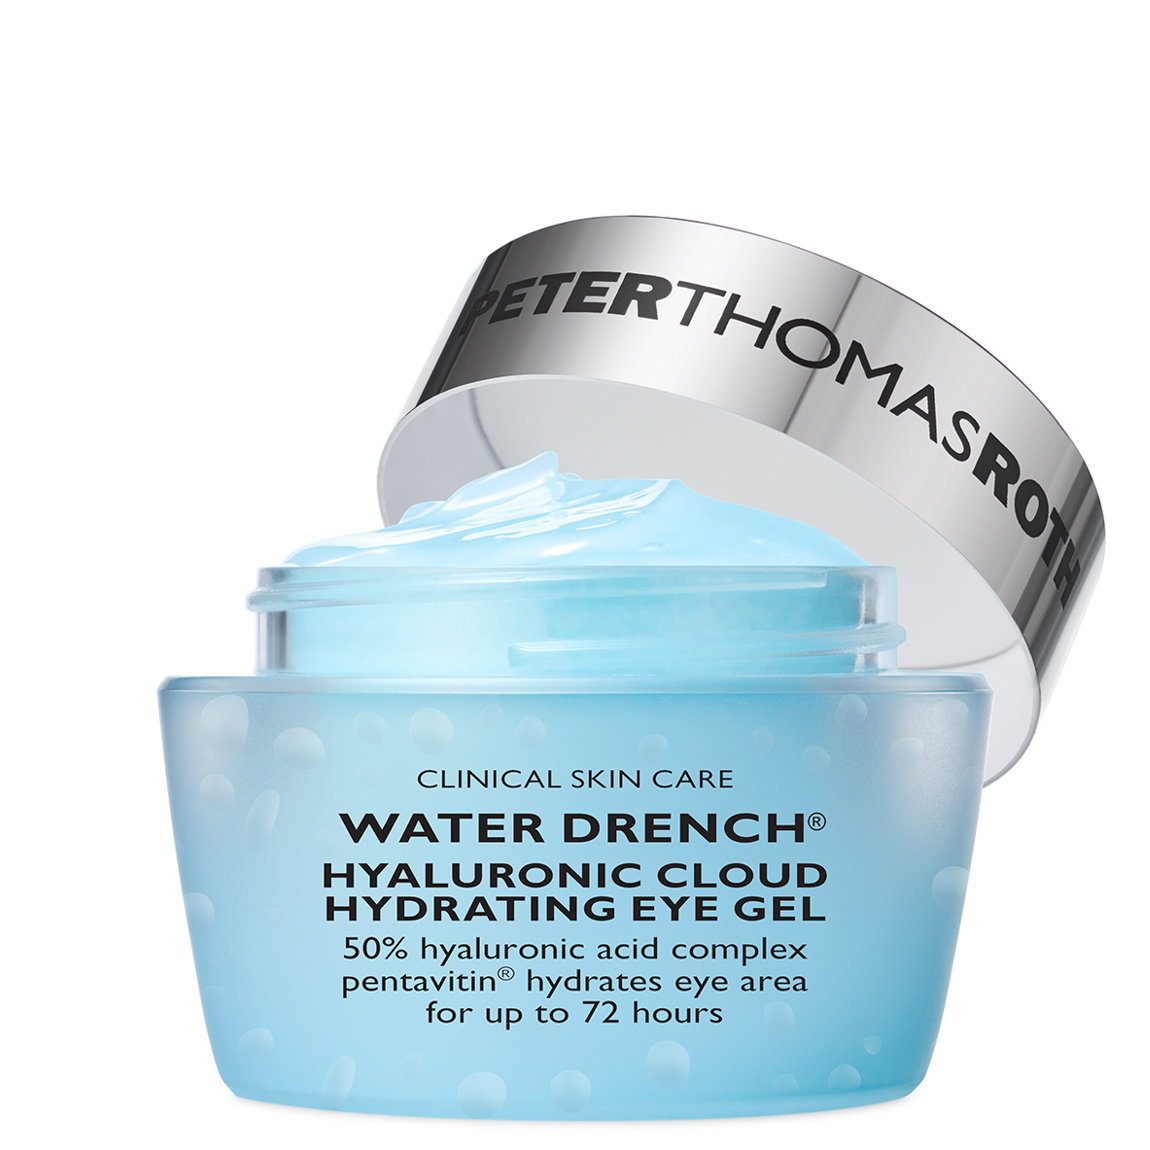 Peter Thomas Roth Water Drench Hyaluronic Cloud Hydrating Eye Gel product swatch.